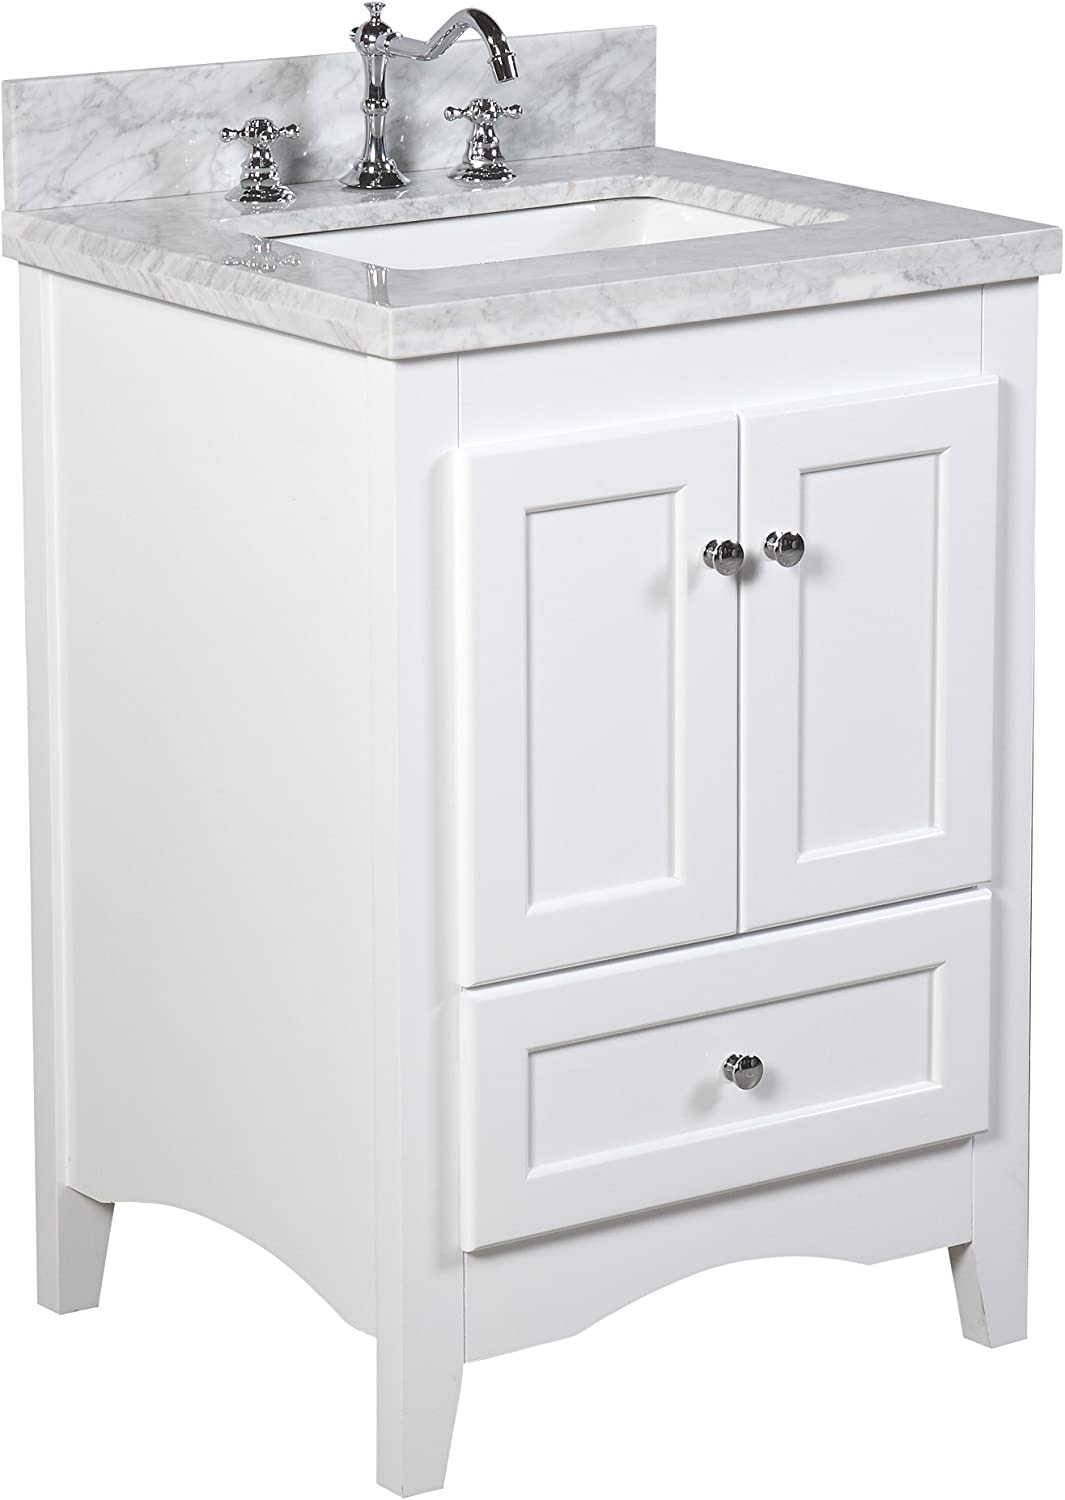 Amazon Com Abbey 24 Inch Bathroom Vanity Carrara White Includes White Cabinet With Authentic Italian Carrara Marble Countertop And White Ceramic Sink Home Improvement